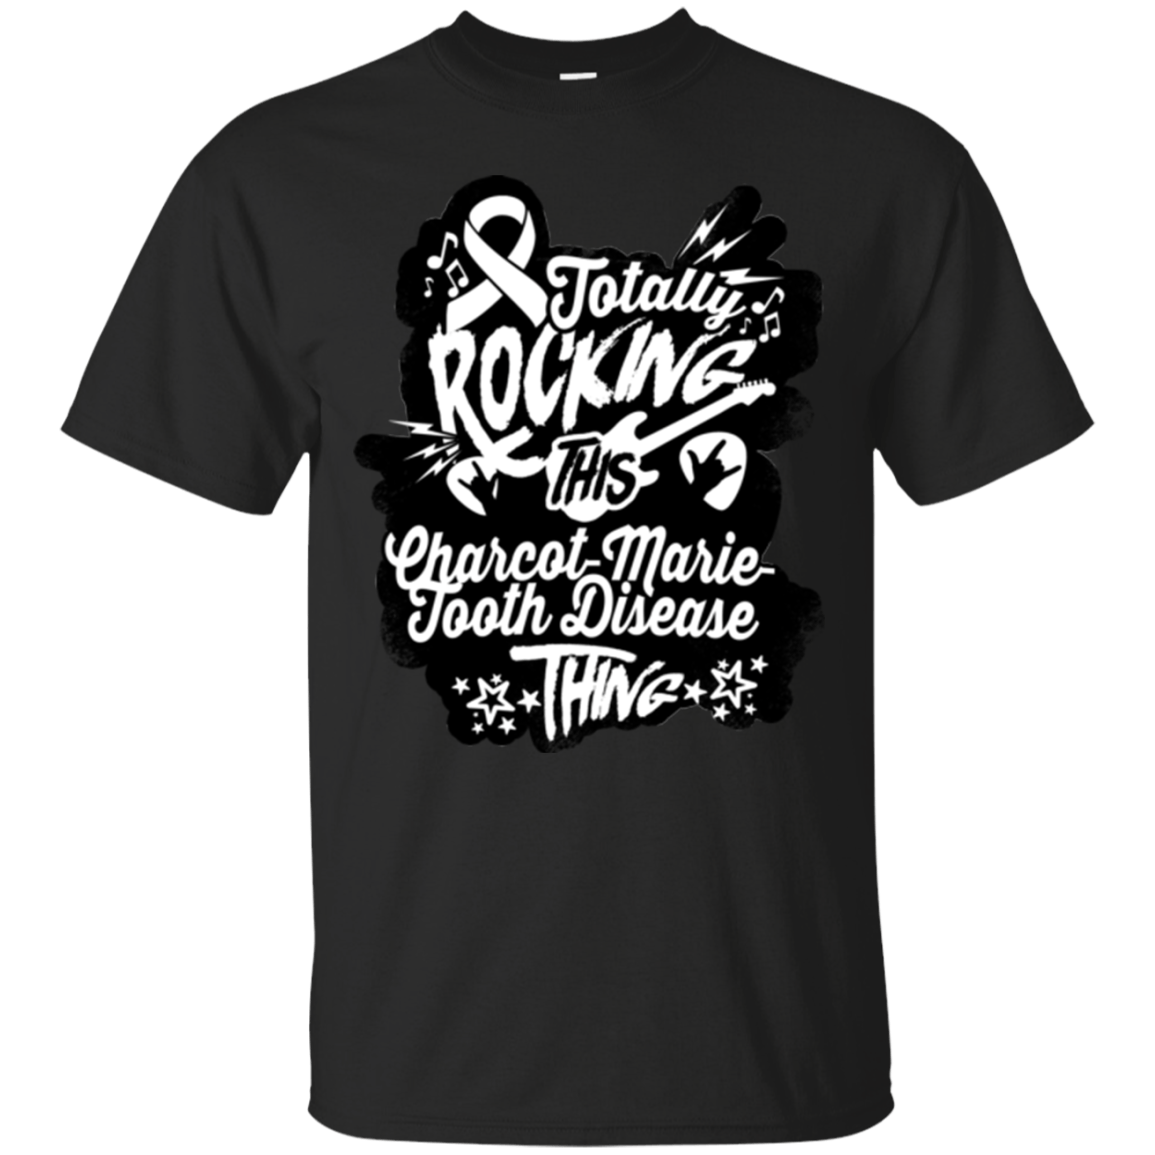 Rocking Charcot-Marie-Tooth Disease Unisex Shirt - The Unchargeables